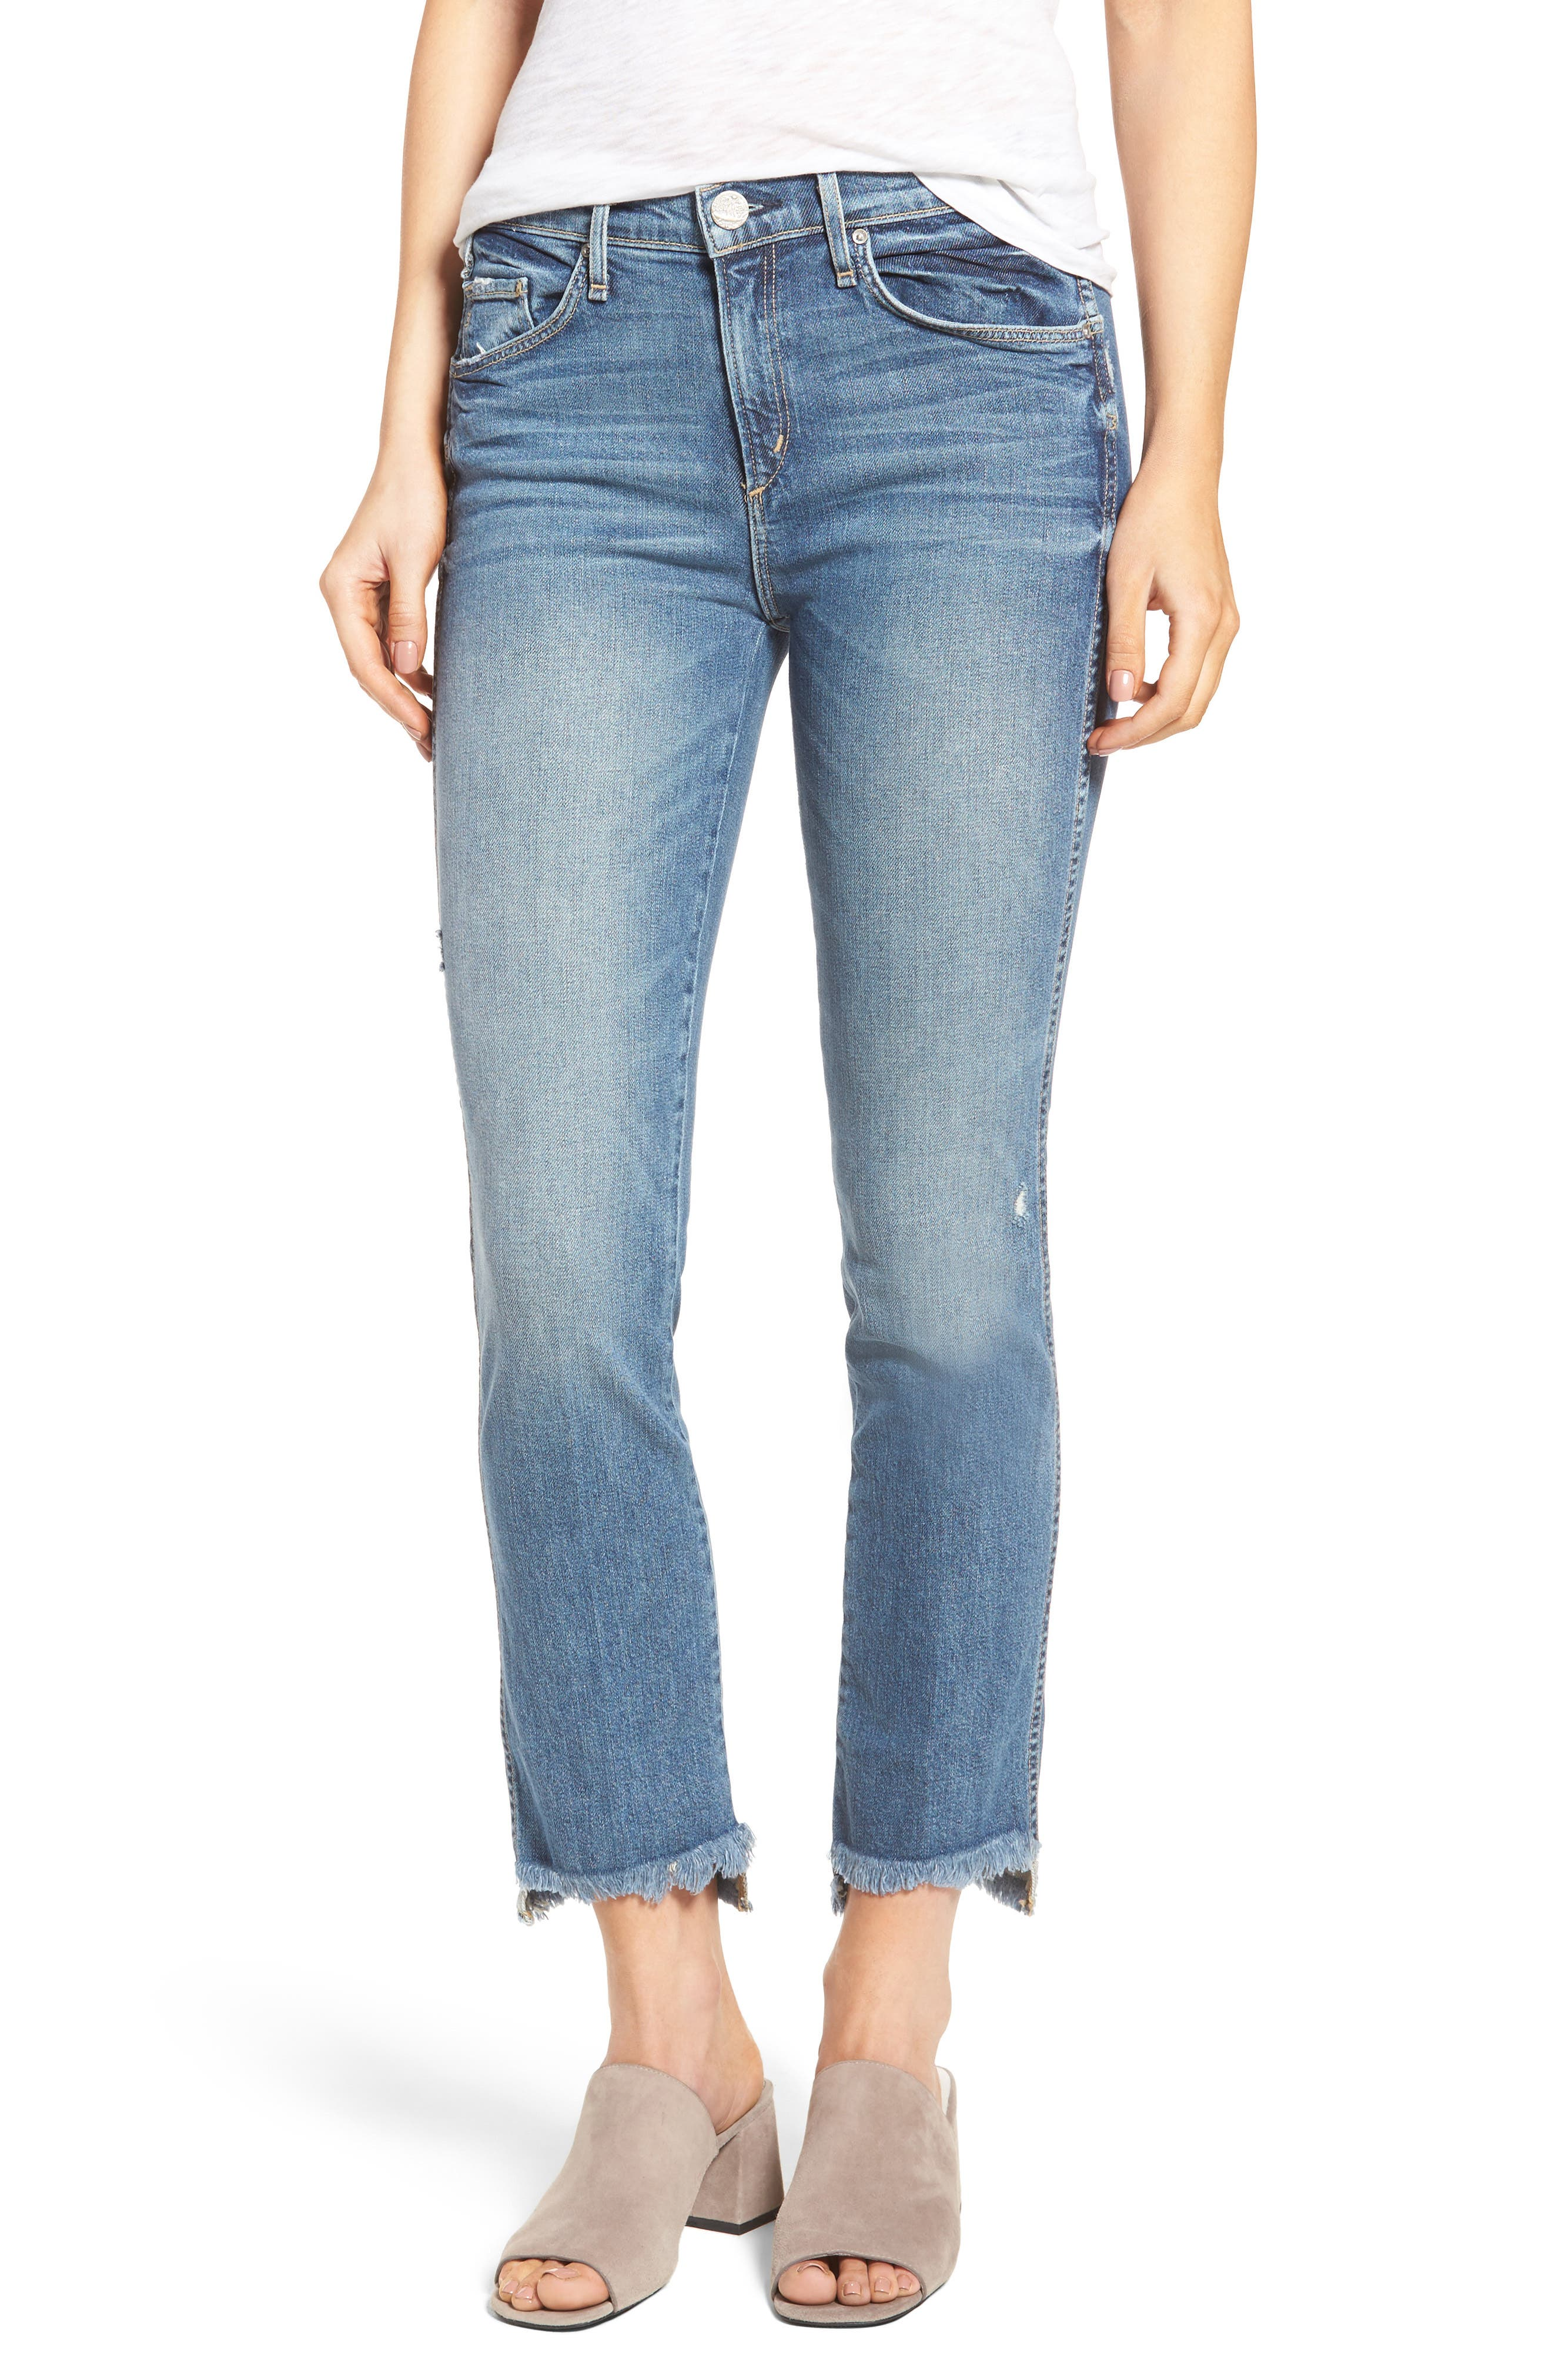 Lido Frayed Crop Straight Leg Jeans,                             Main thumbnail 1, color,                             461